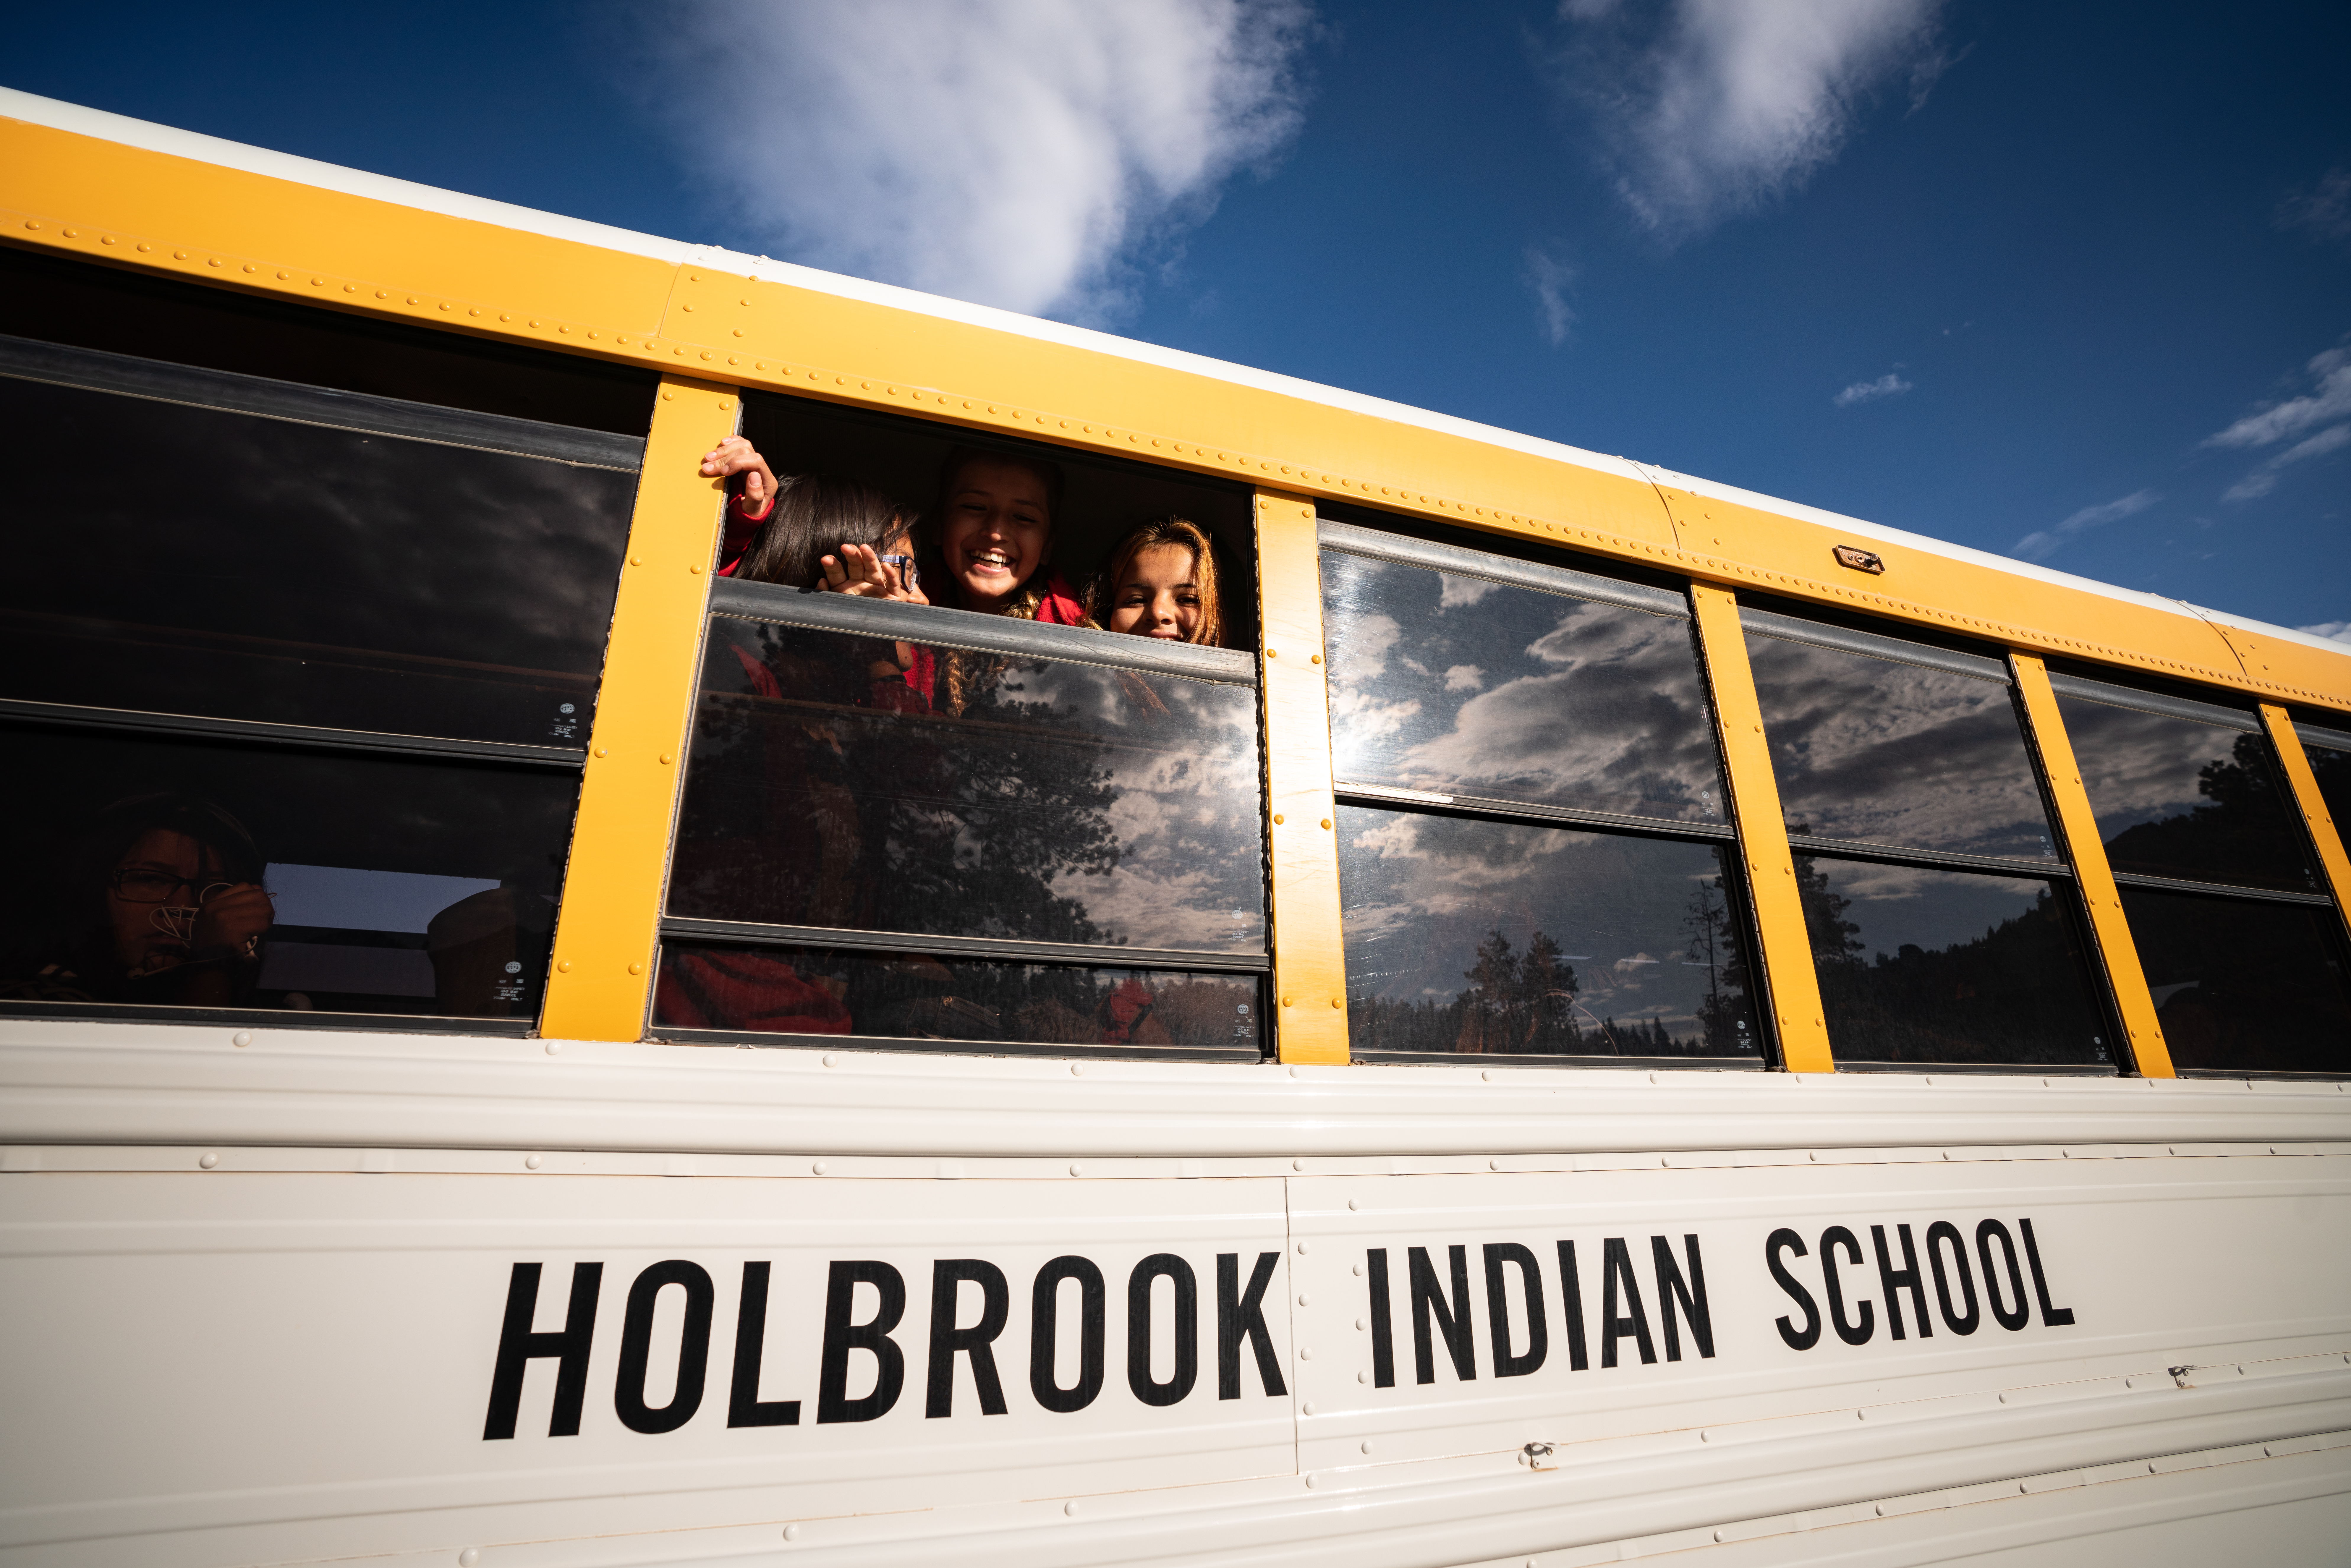 Students of Holbrook Indian School smile from the window of a school bus.